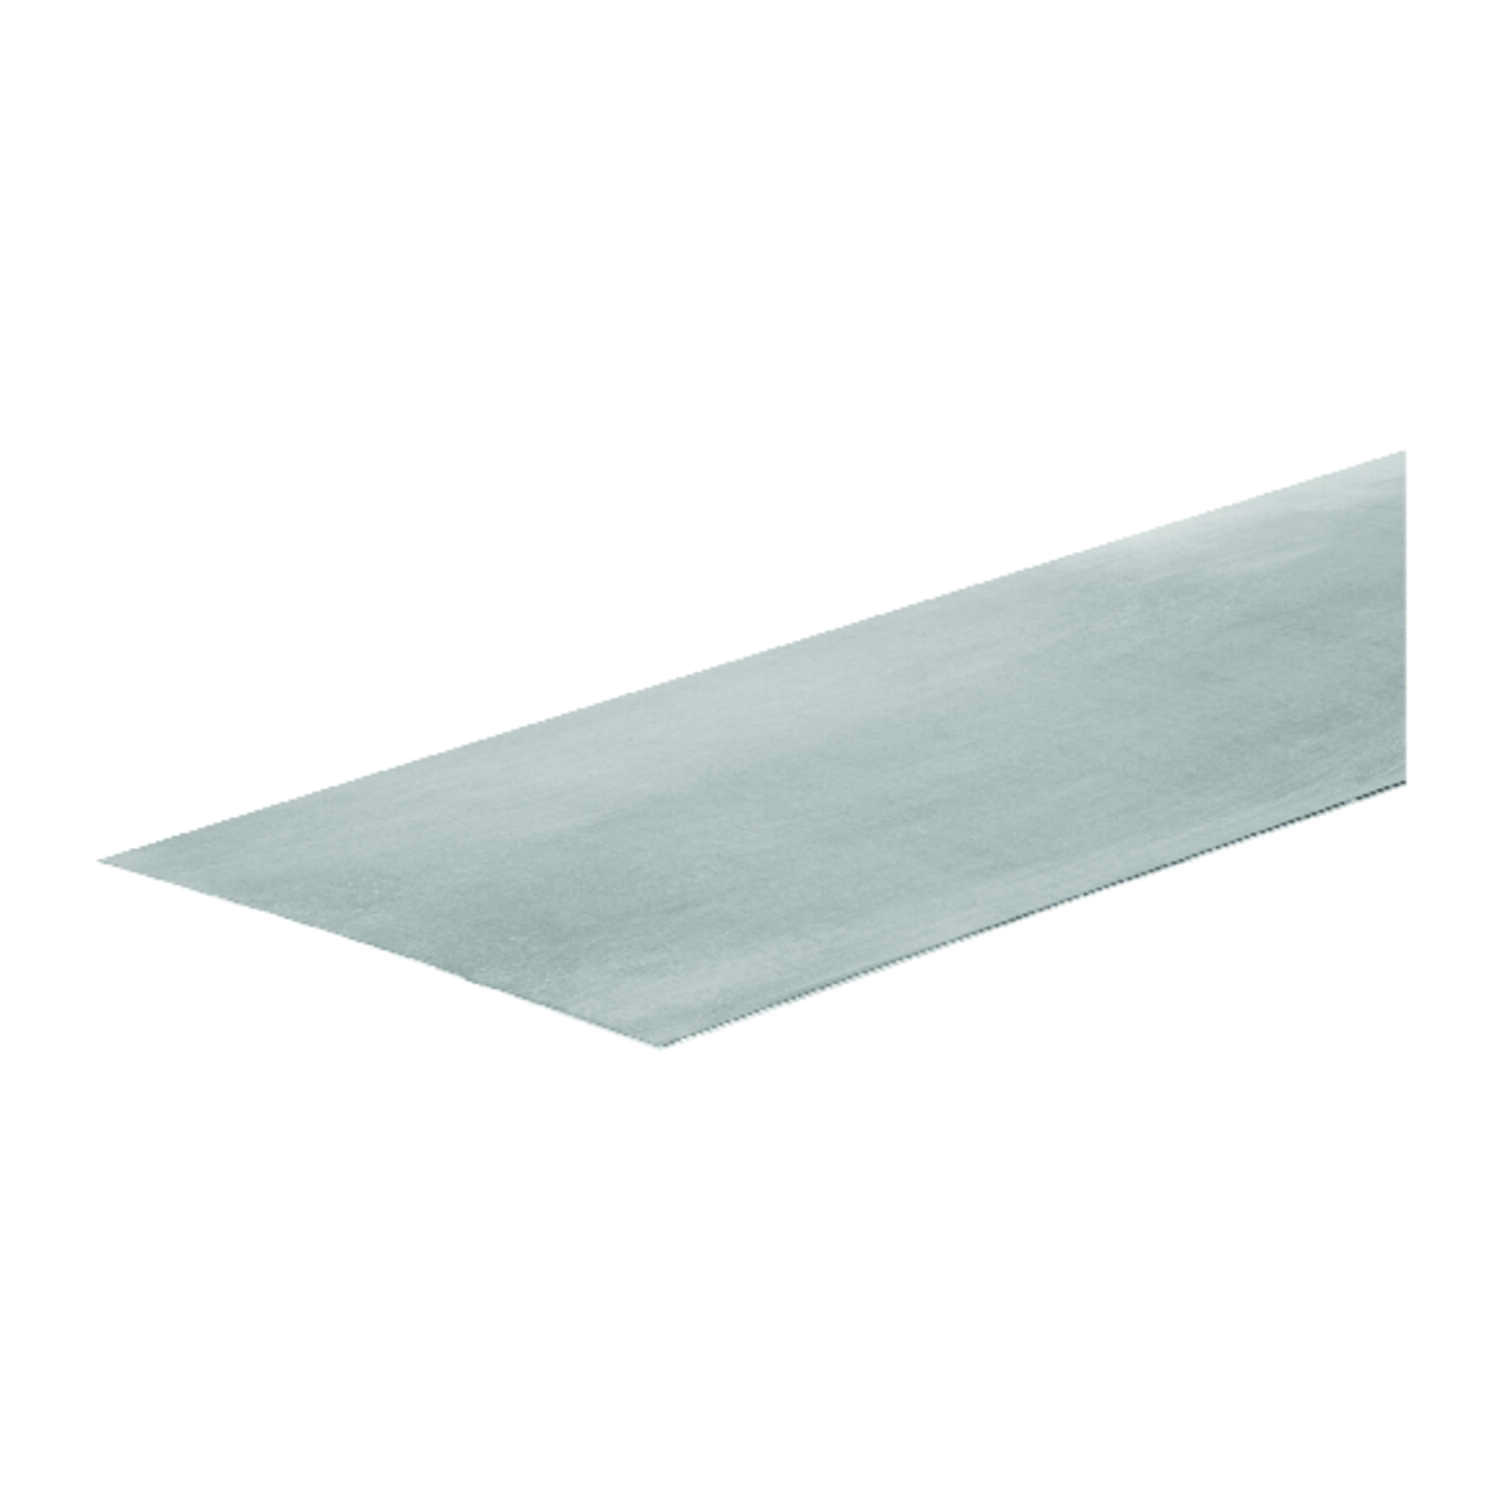 Boltmaster  Steel  Sheet Metal  24 in. Galvanized